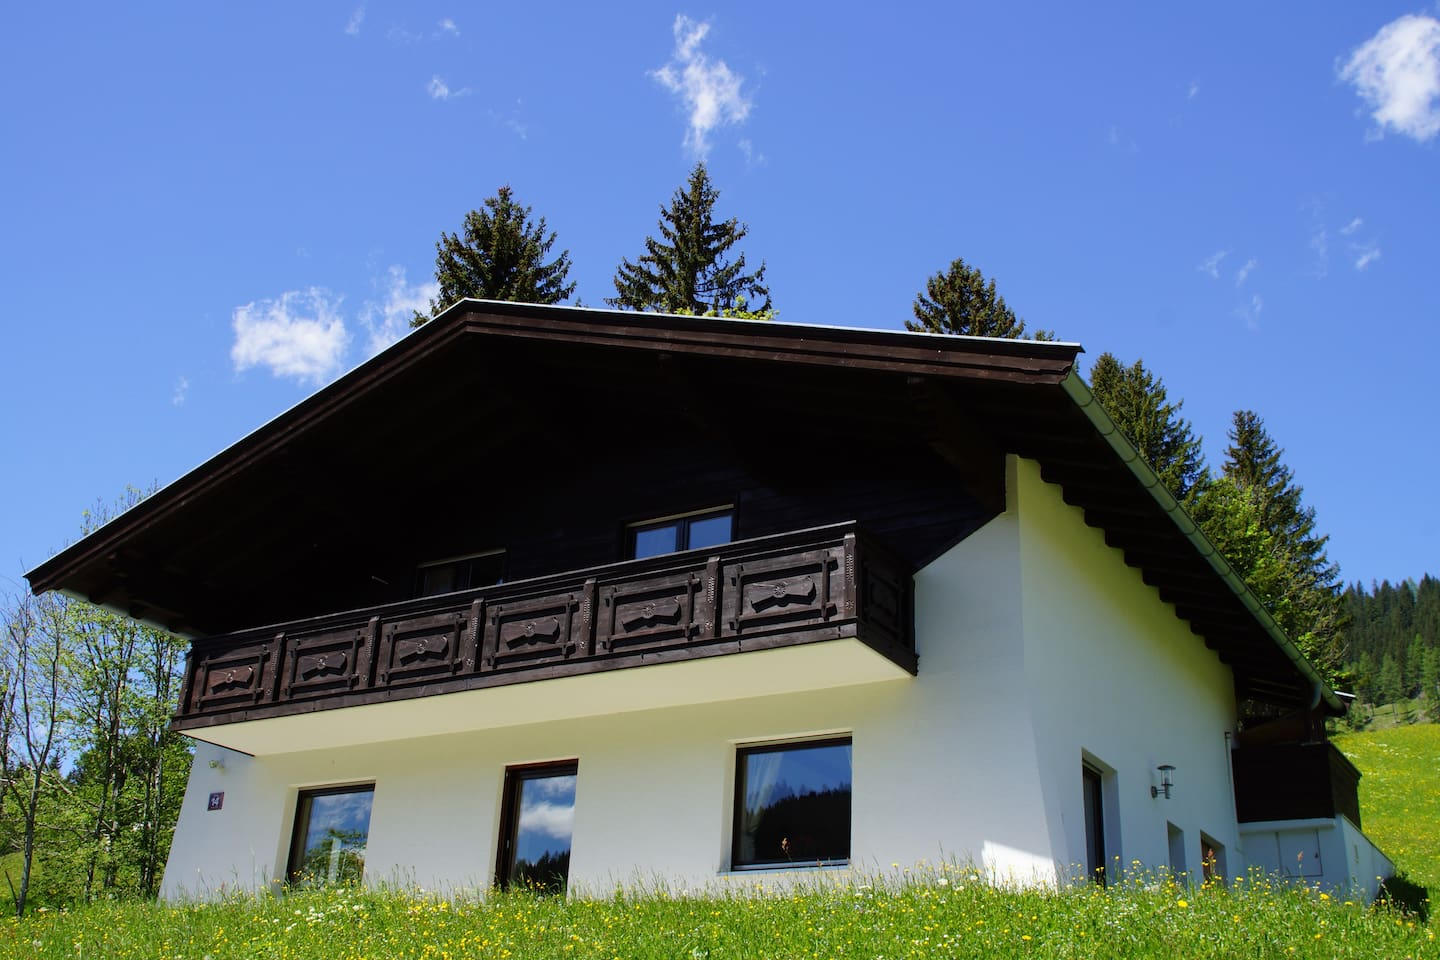 Das Haus/in front of the house